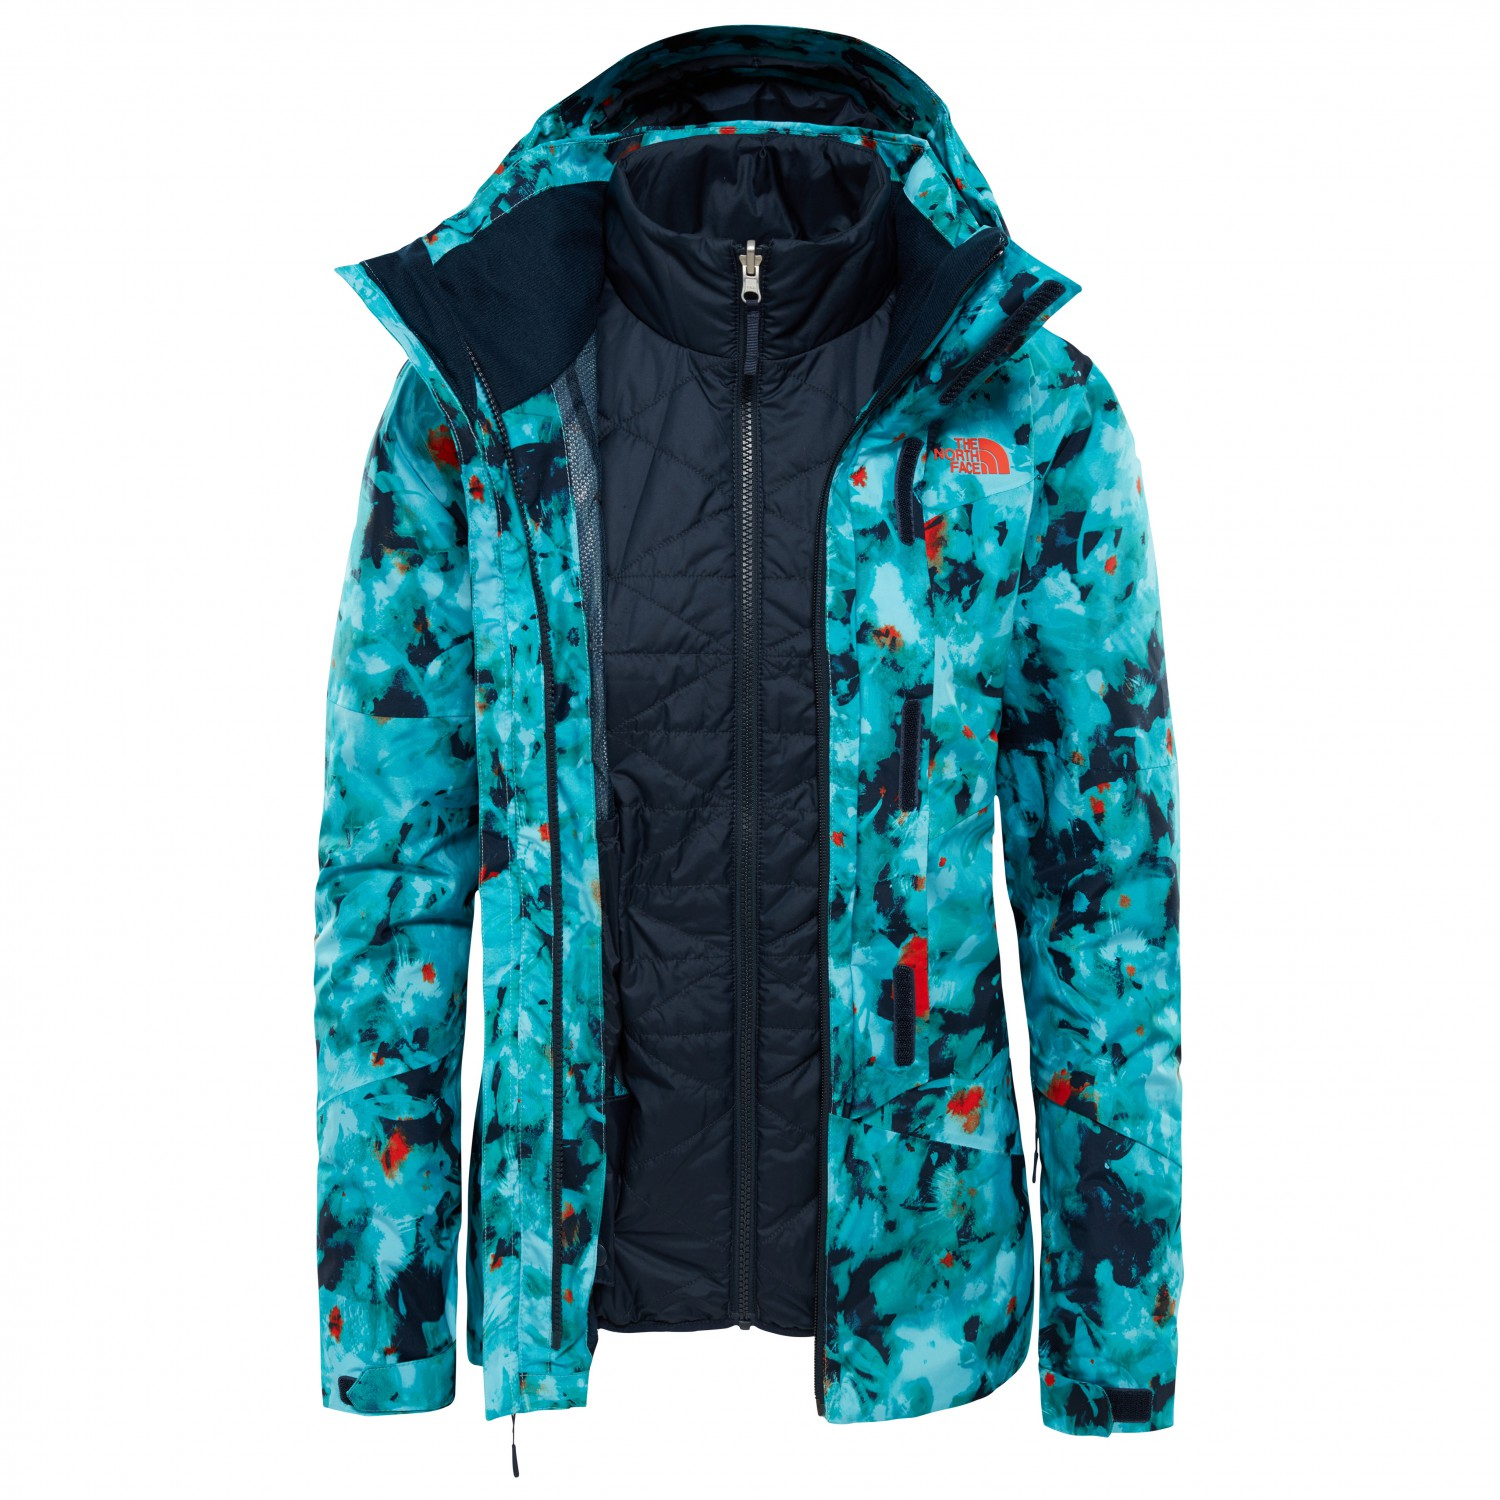 2d7bfb405b The North Face Garner Triclimate Jacket Women s